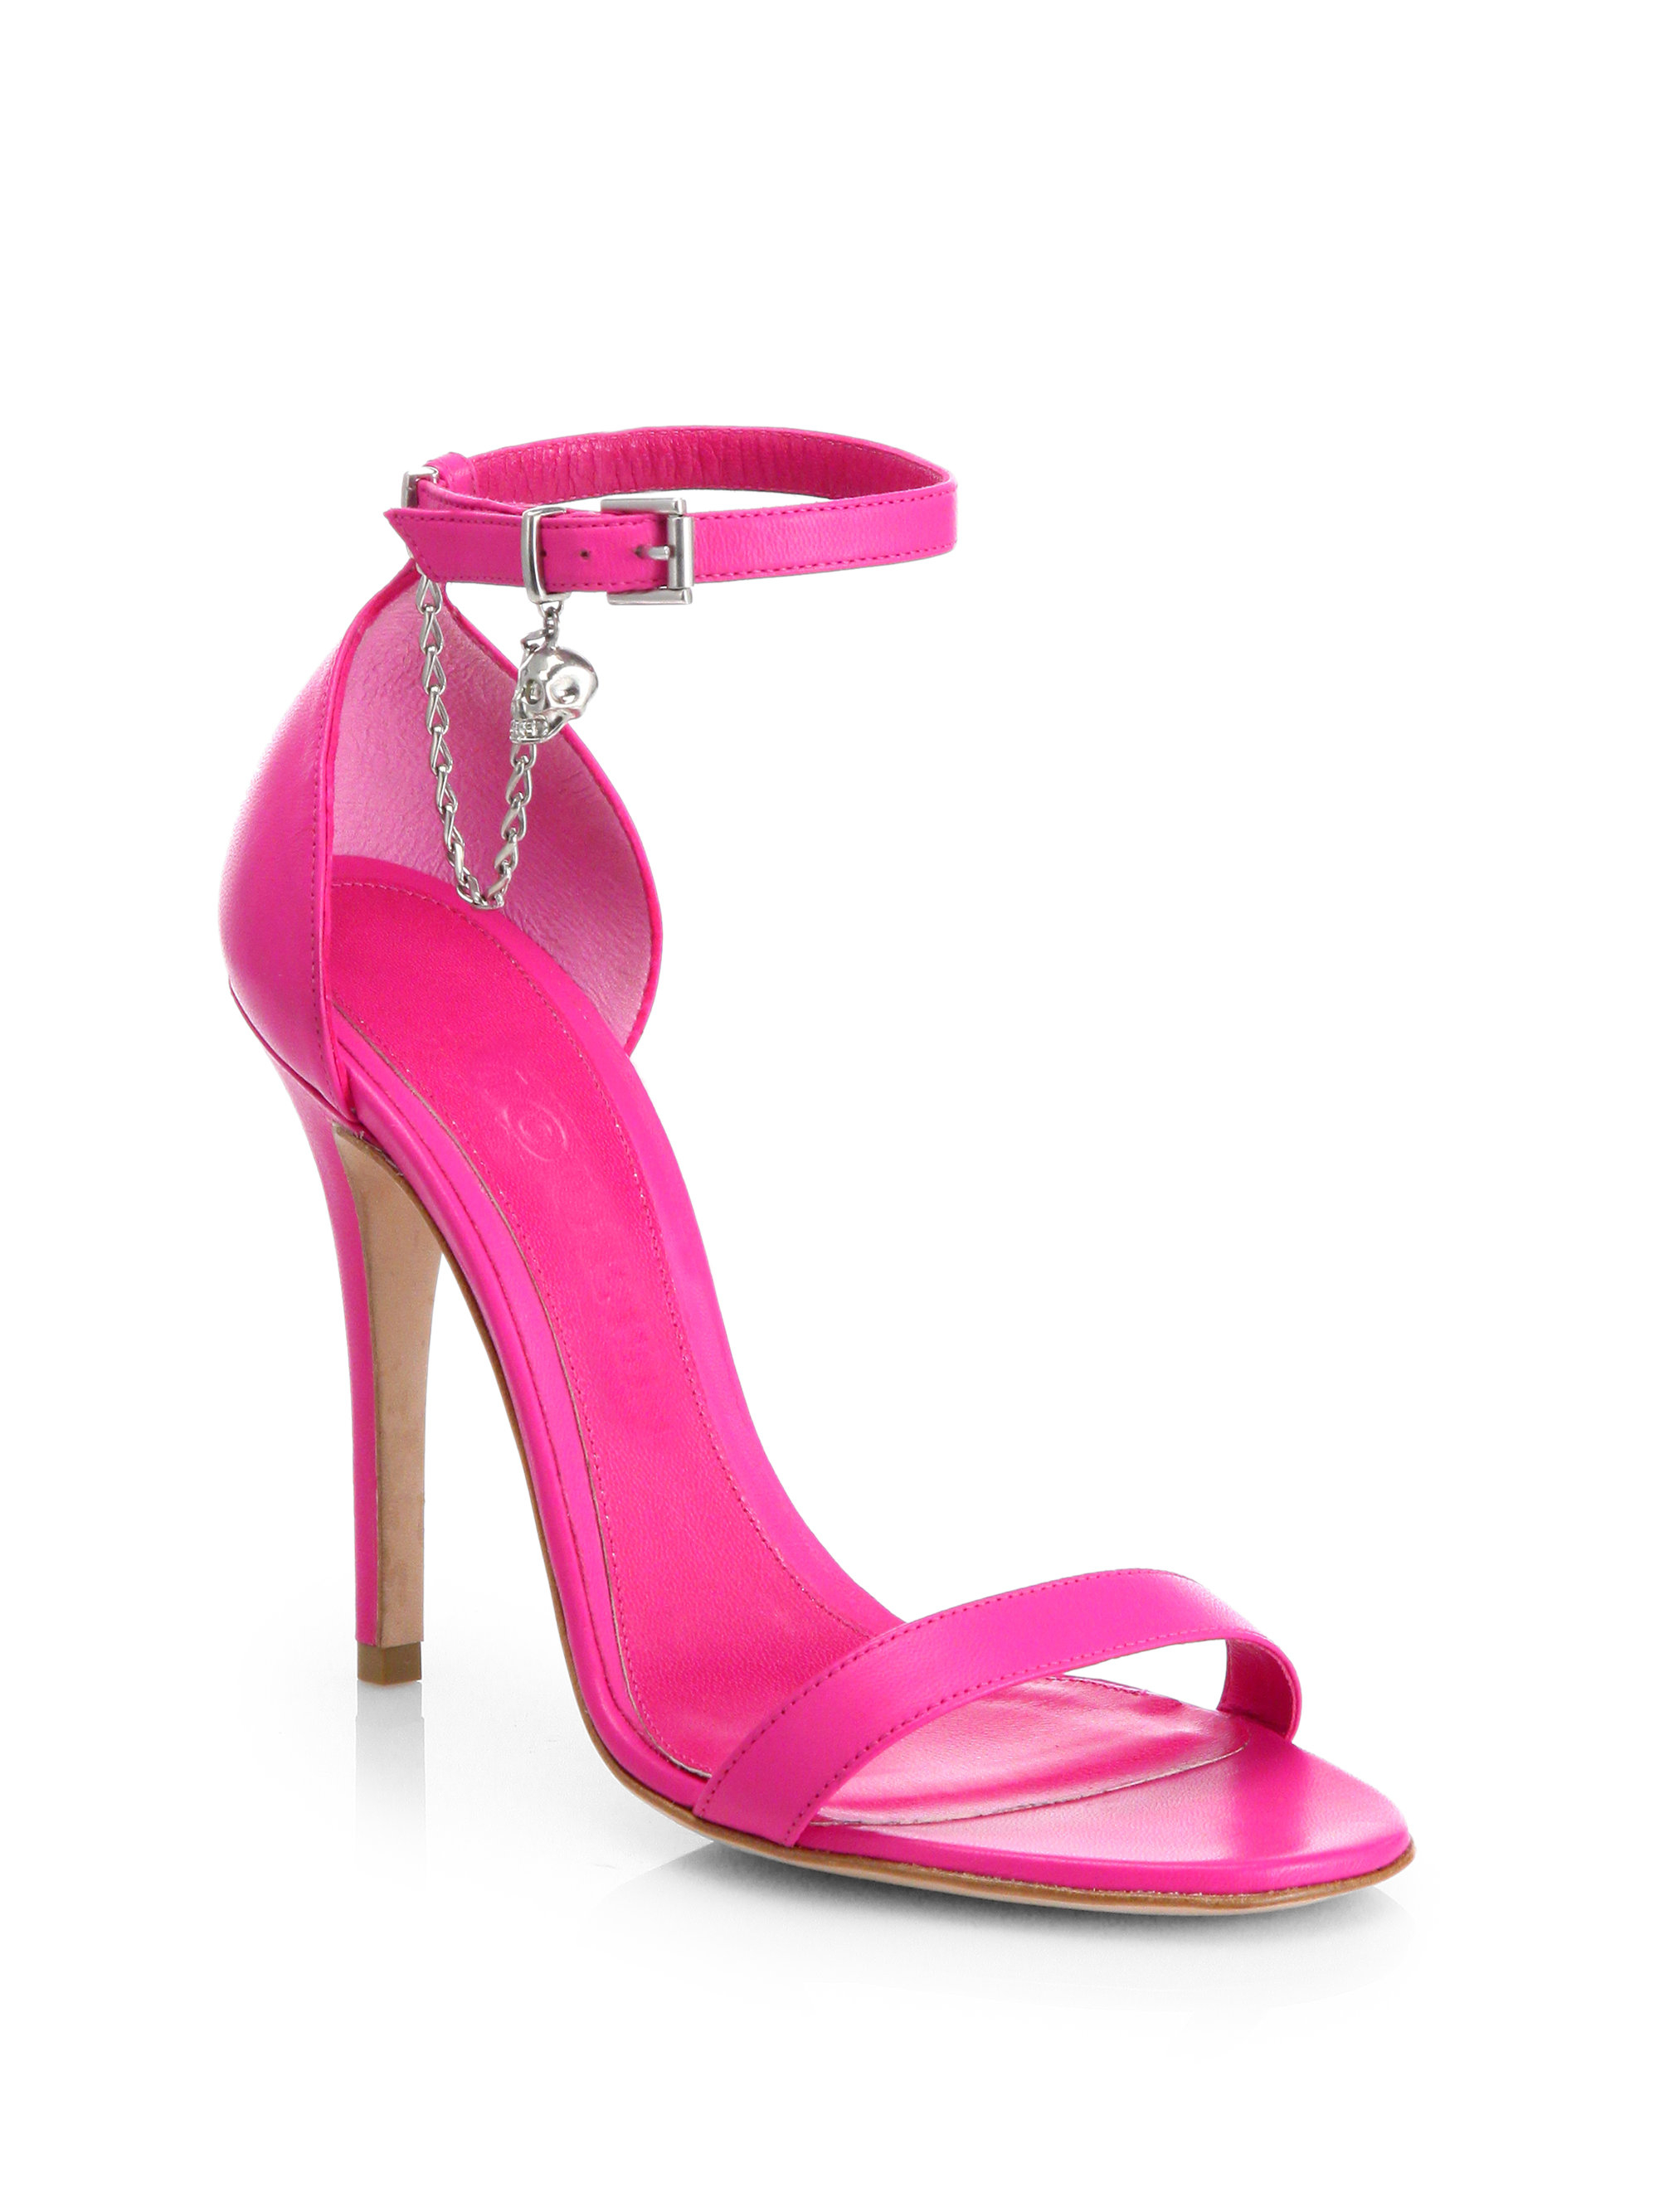 Alexander Mcqueen Skull Leather Ankle Strap Sandals In